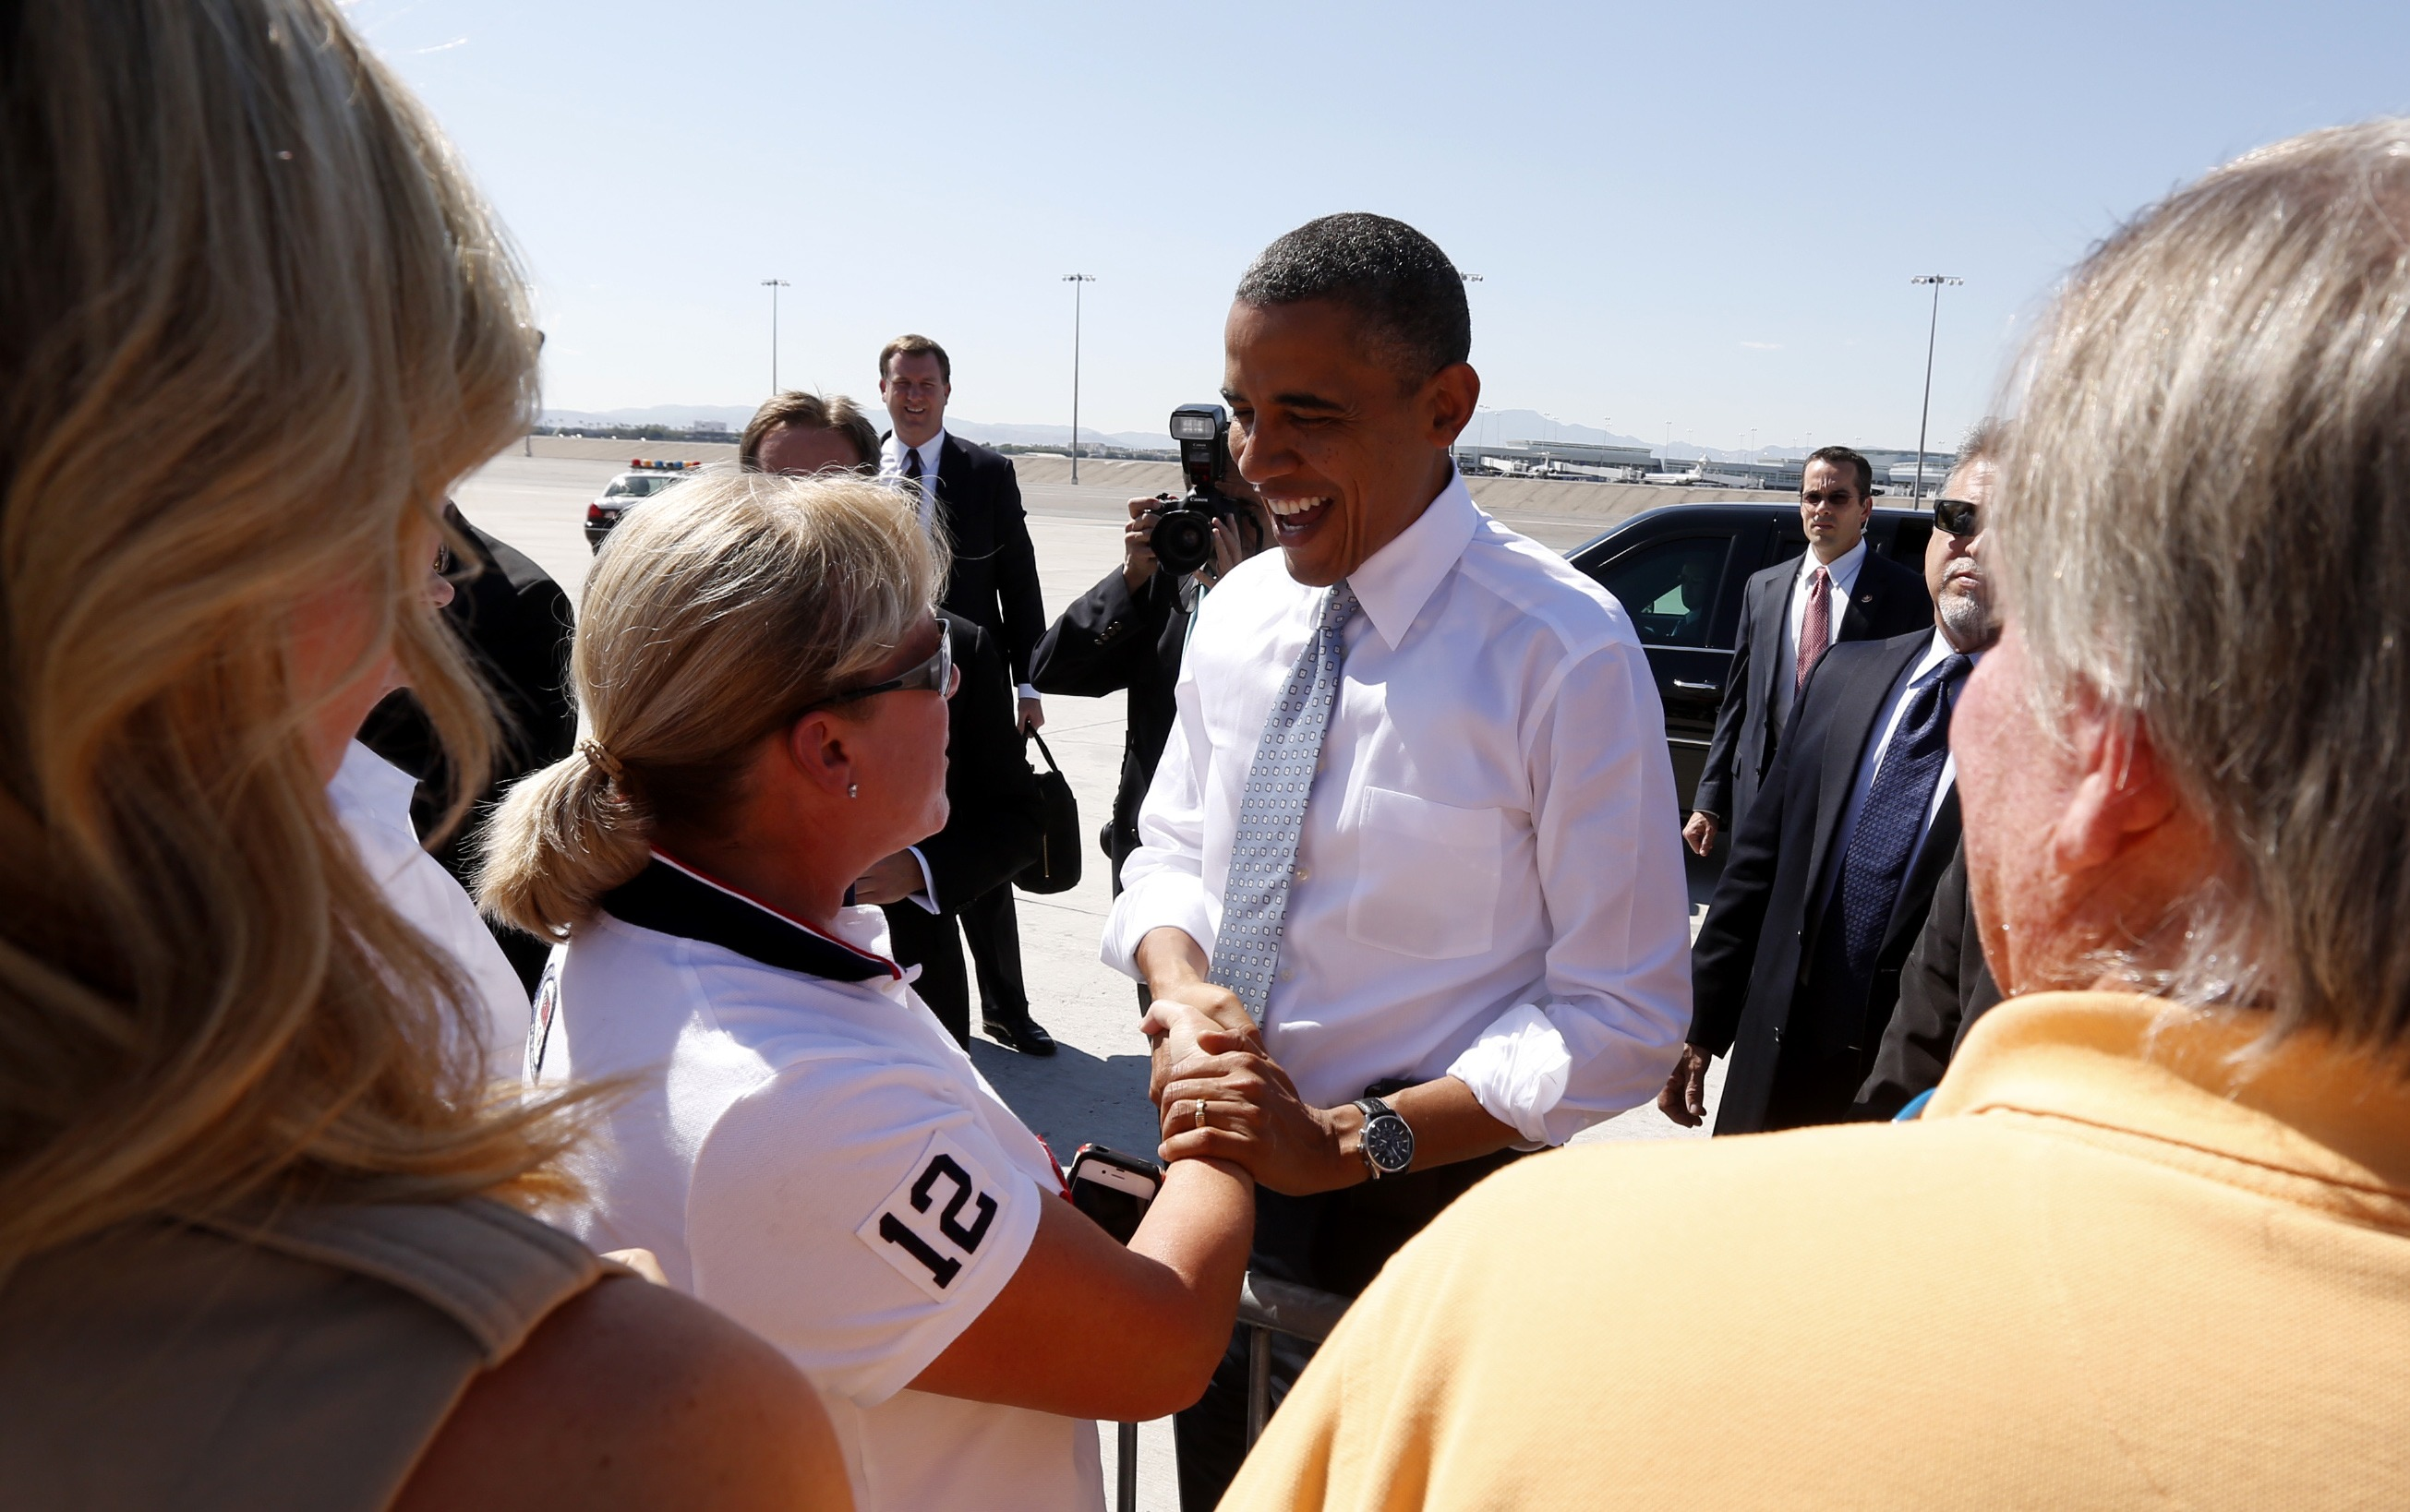 President Barack Obama greets supporters upon his arrival in Las Vegas, Nevada (Kevin Lamarque/Reuters)